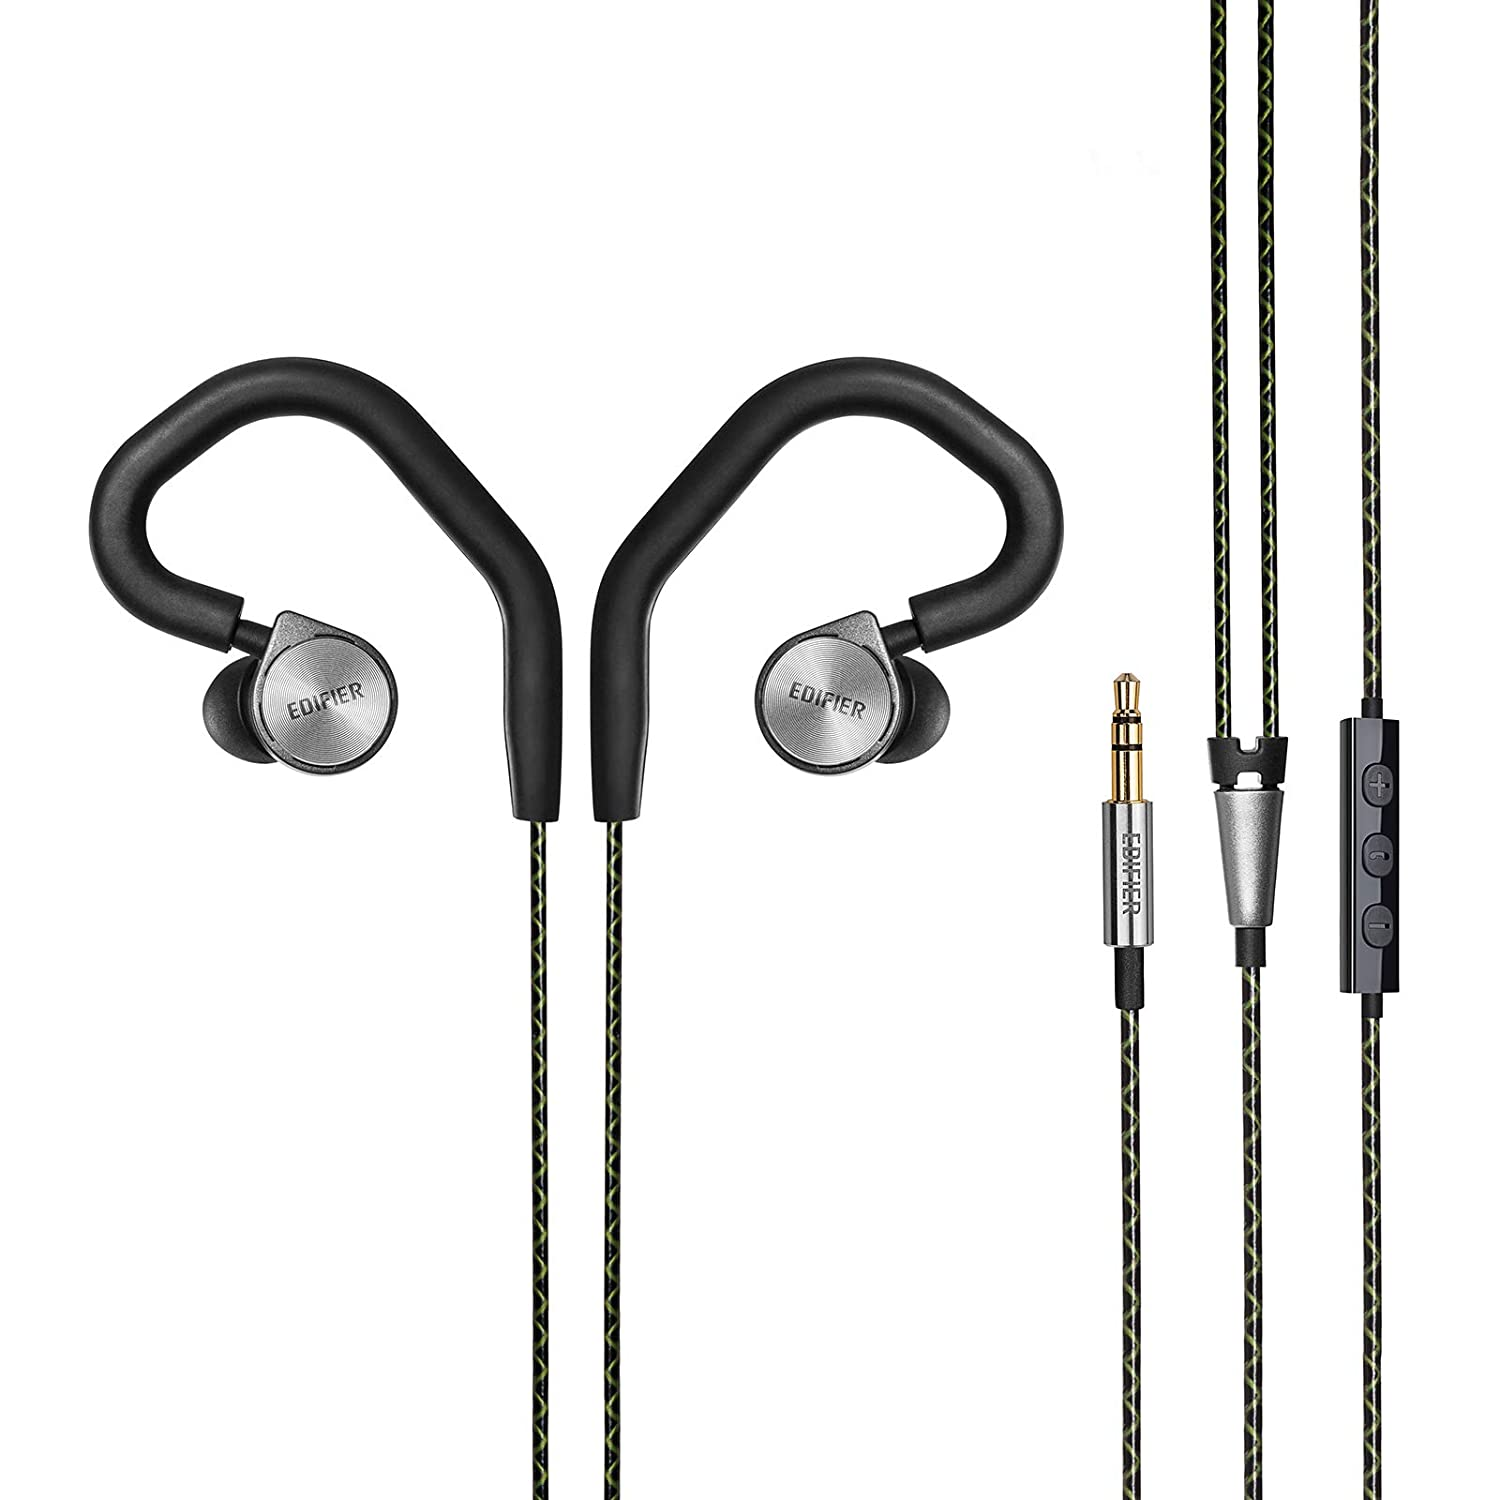 Edifier P297 Earbuds with Mic – in-line Controls, Ergonomic